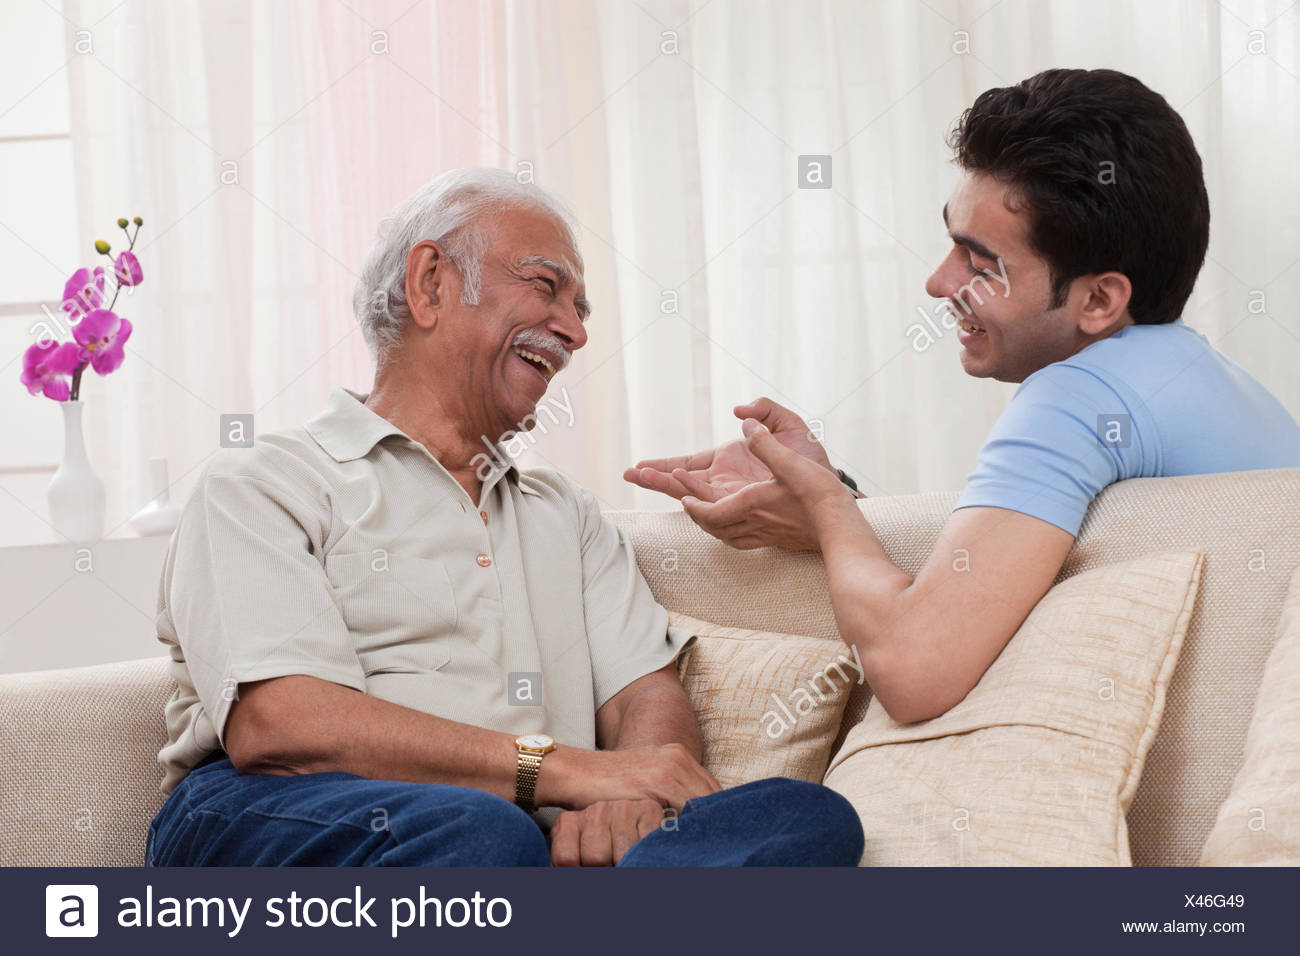 Grandson and grandfather talking - Stock Image